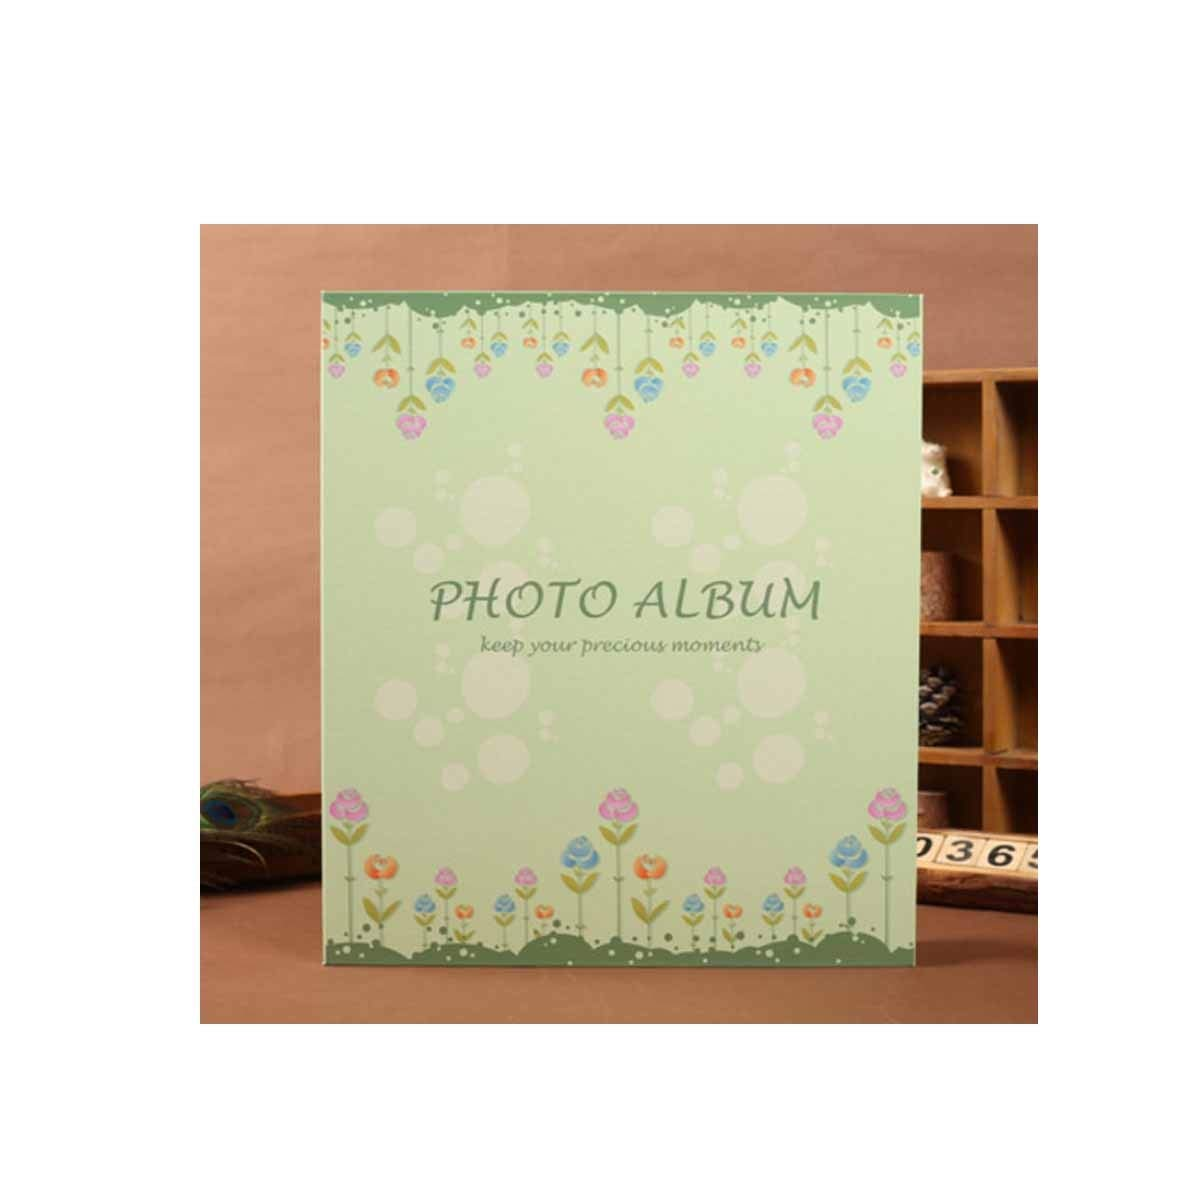 Fengshangshanghang Photo Album, Stylish and Cute Appearance Traditional Photo Album, Family Record Child Baby Growth Record Book, (can Accommodate 500 Photos, Green) (Color : Green) by Fengshangshanghang